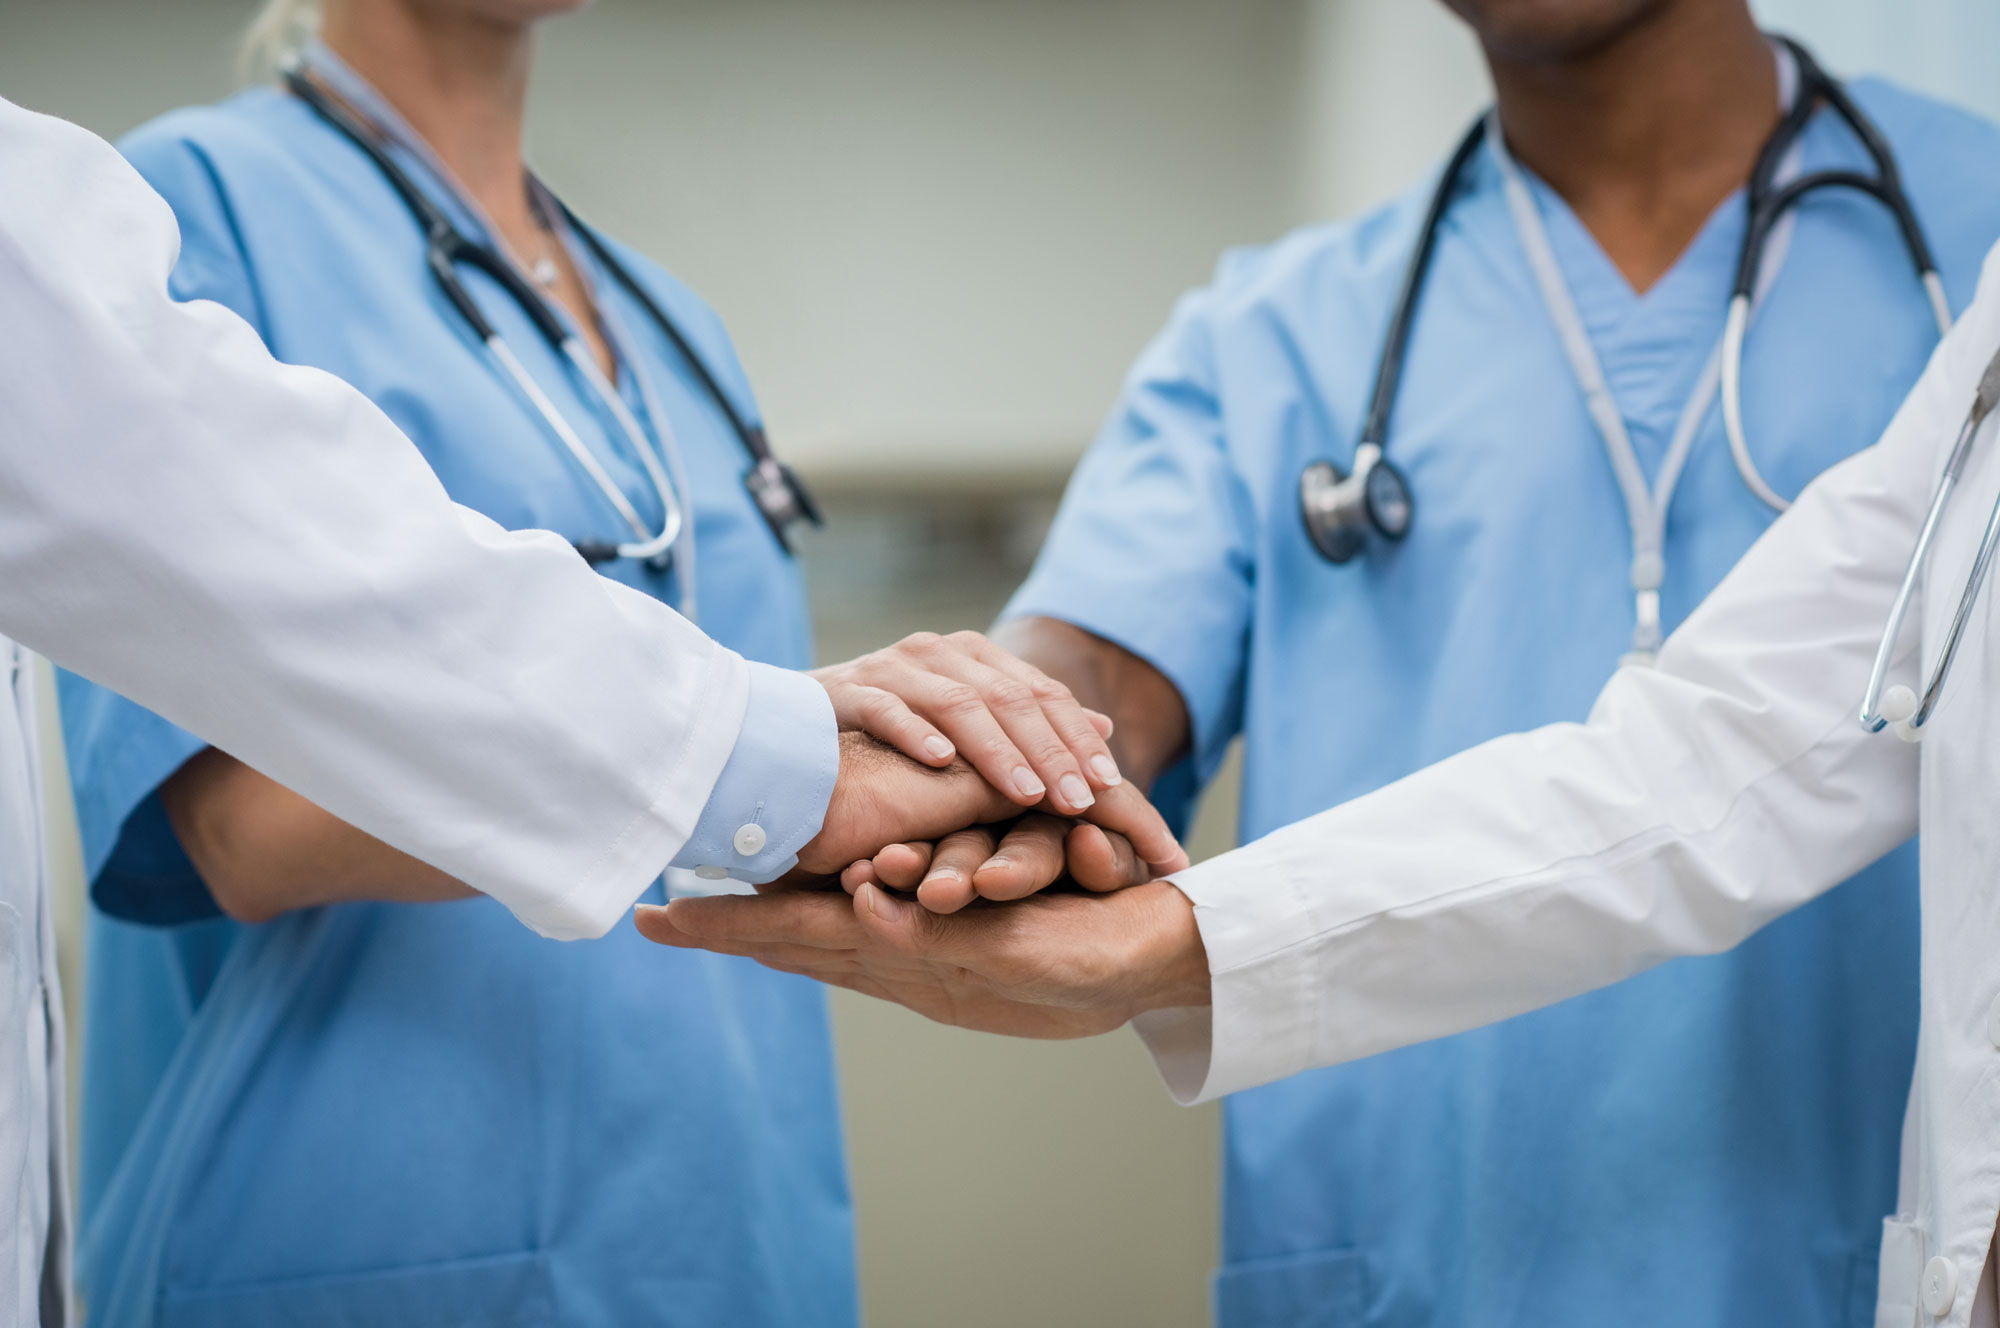 Medical staff hands stacked on each other in comradery